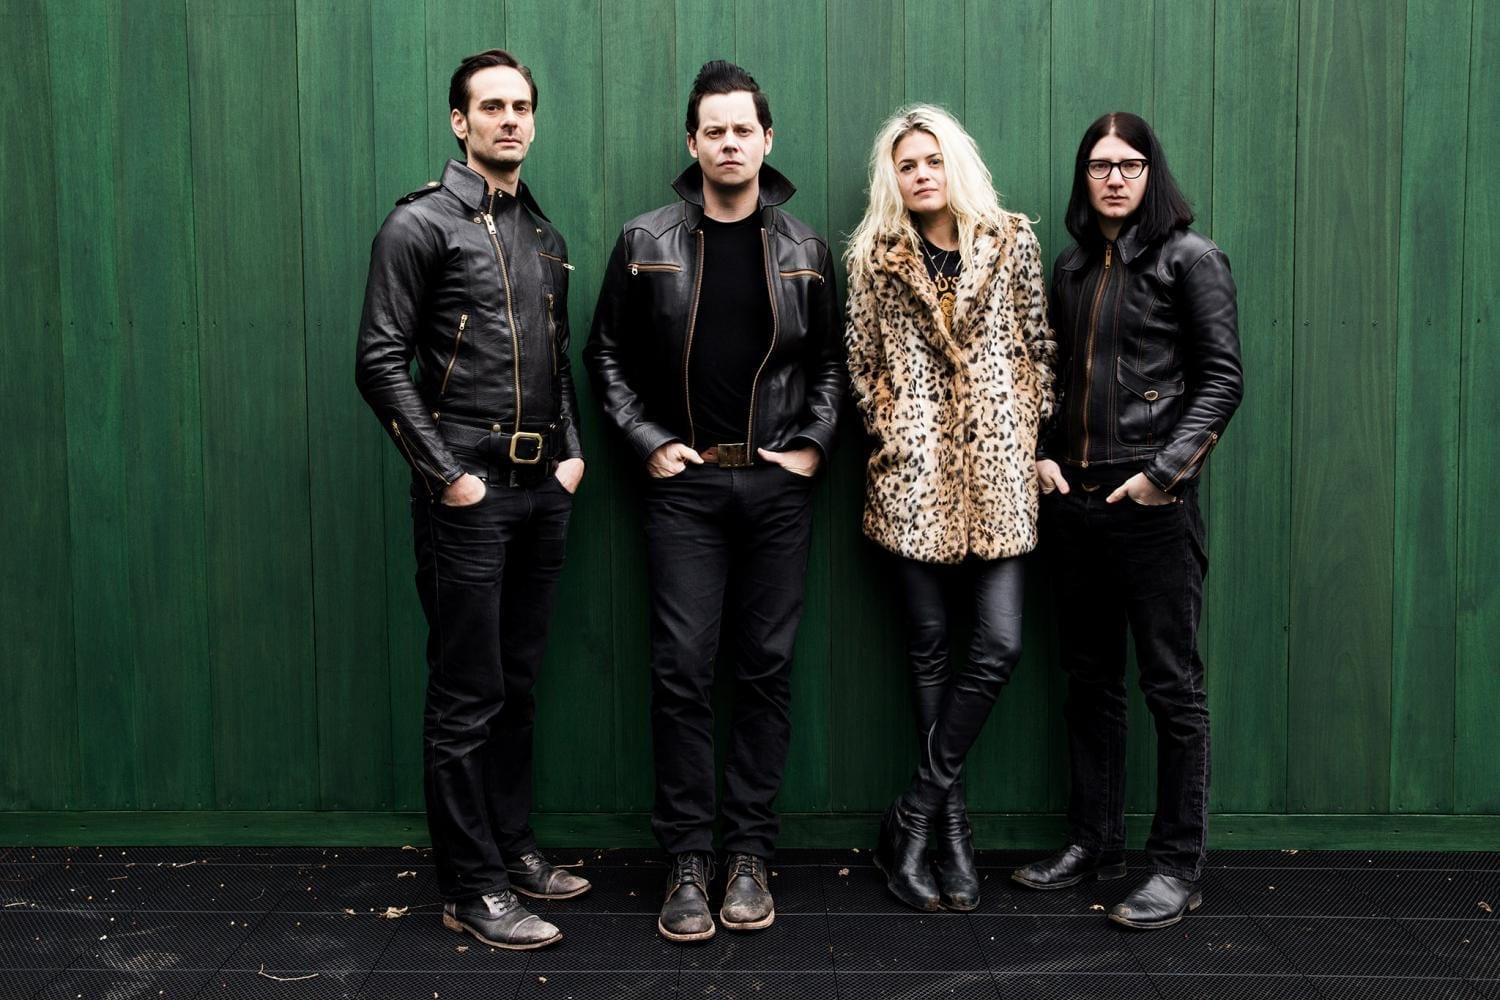 Single Review: I Feel Love (Every Million Miles) // The Dead Weather